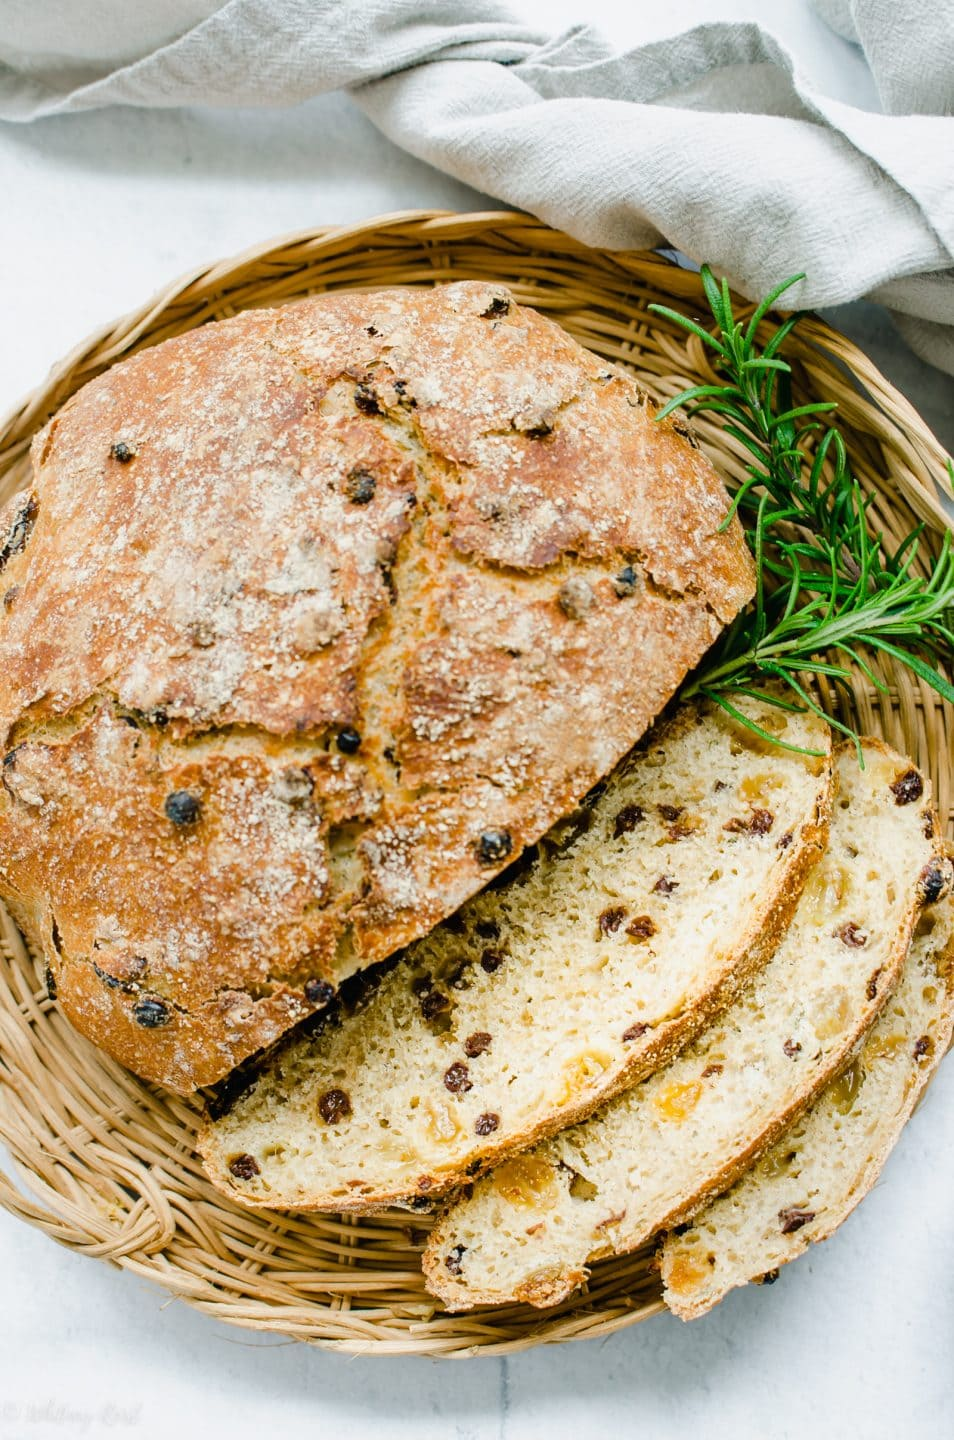 An overhead shot of a loaf of Rosemary Raisin Bread partially sliced on a wicker charger and a sprig of fresh rosemary on the side.